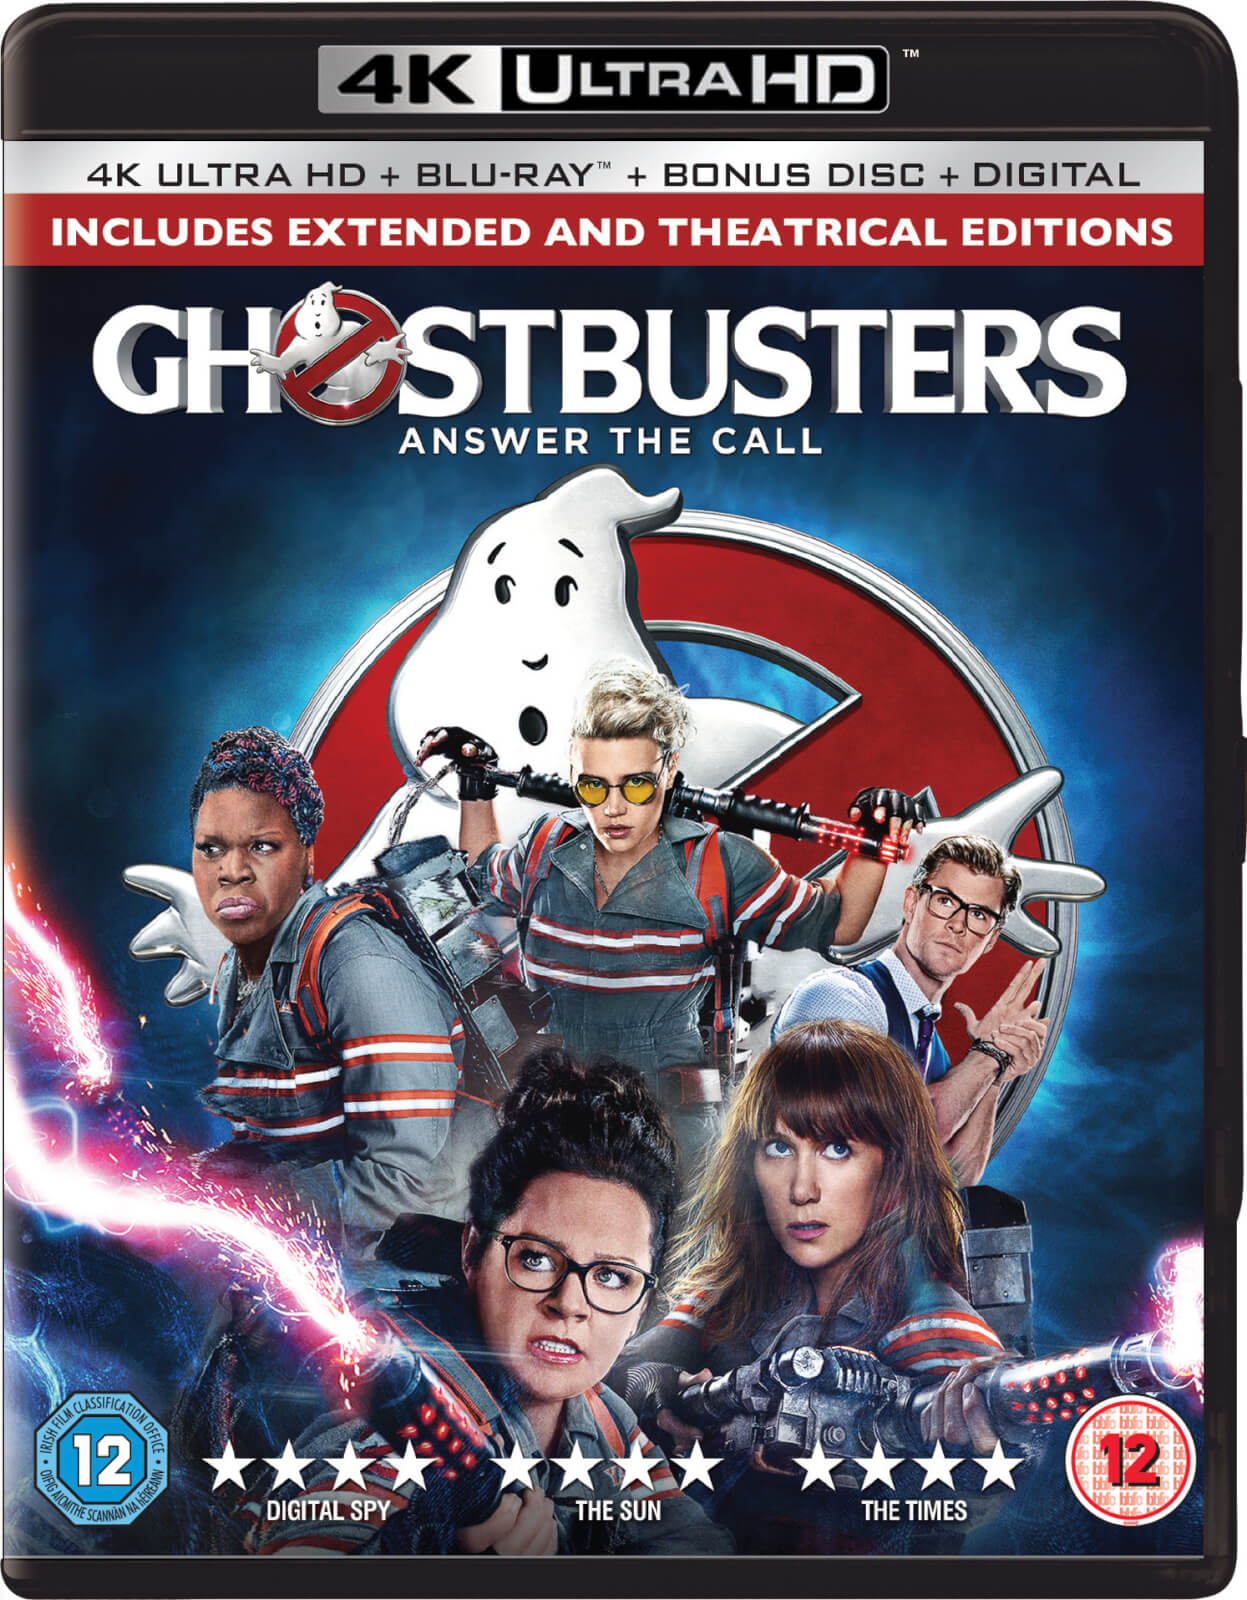 ghostbusters 2 disc 4k ultra hd blu ray blu ray zavvi. Black Bedroom Furniture Sets. Home Design Ideas